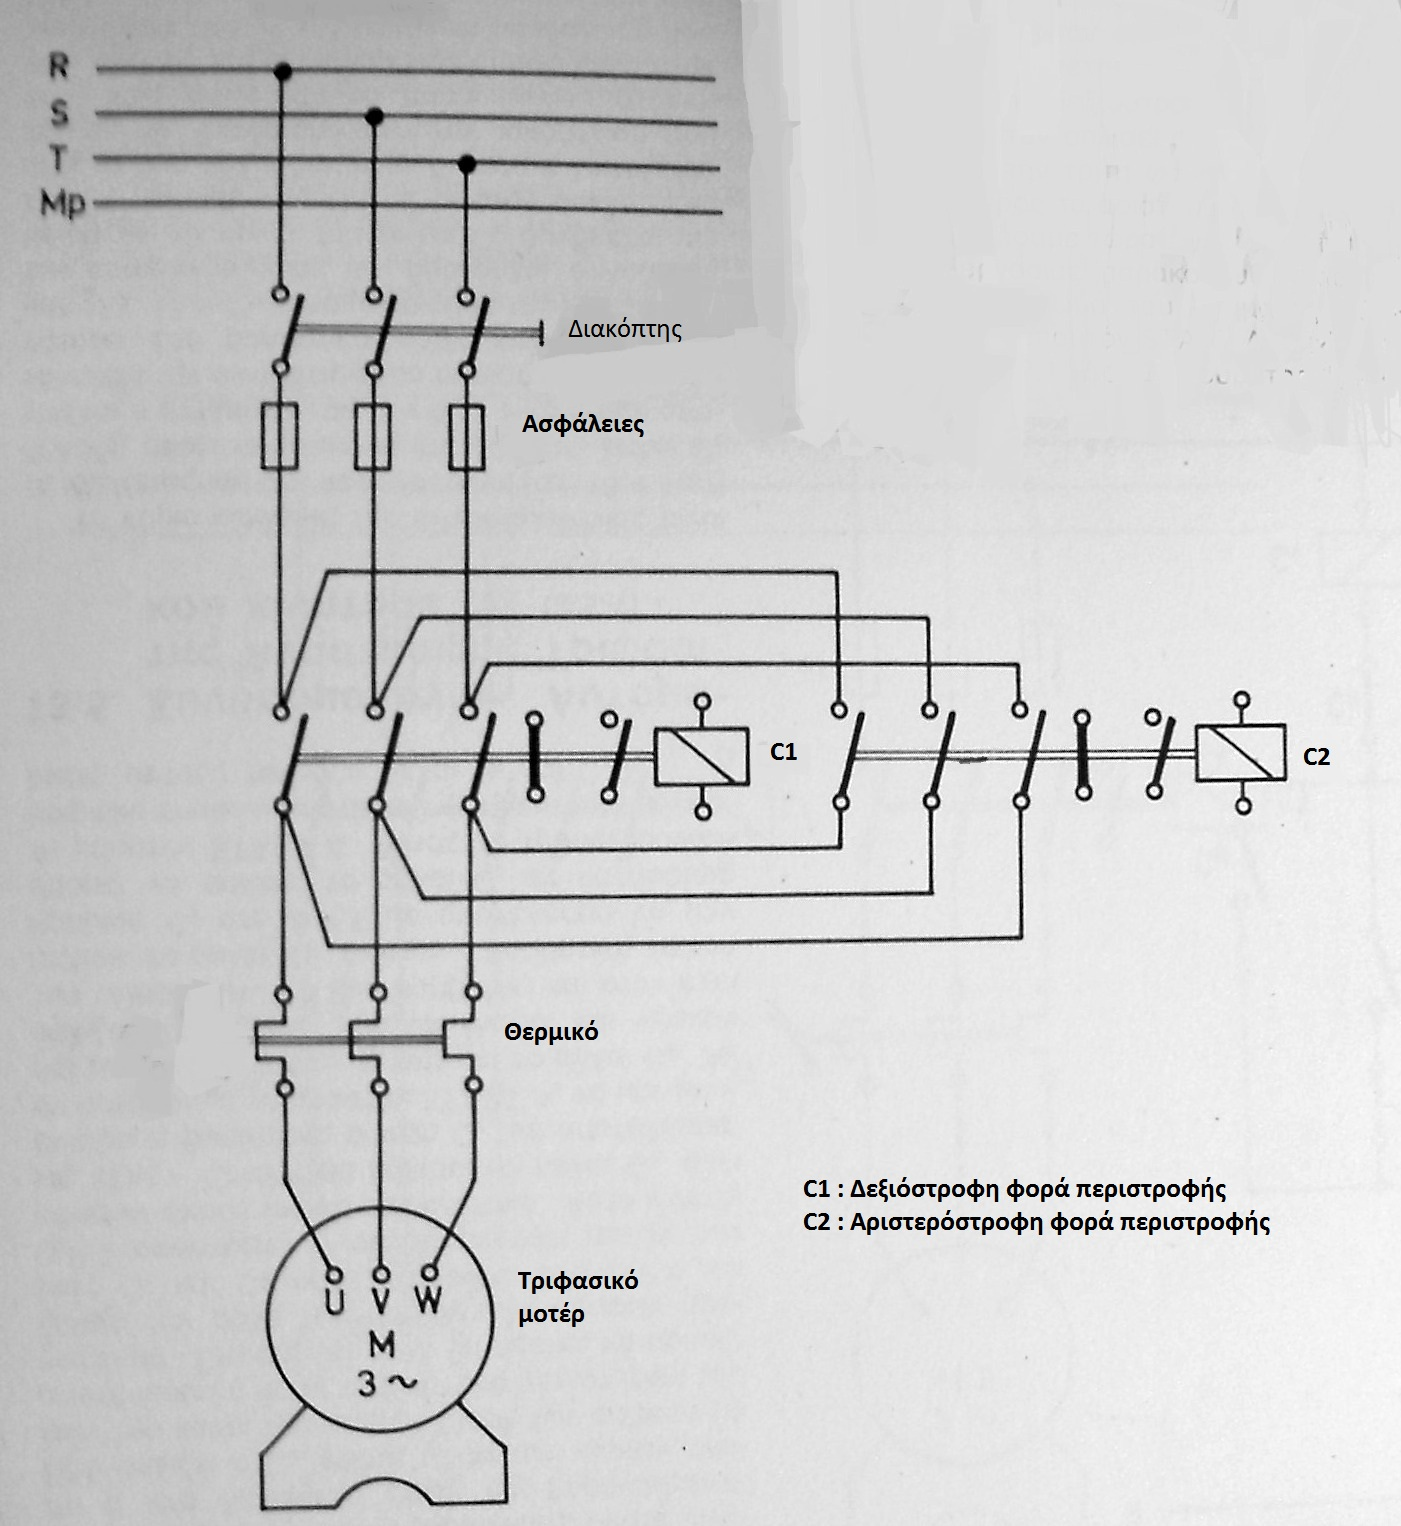 Electrician: Wiring diagram for power circuit clockwise and ... on three phase transformer diagram, three phase motor dimensions, three phase motor control circuit diagram, switch wiring diagram, three phase motor schematic, motor stator winding diagram, three-phase contactor wiring diagram, three phase motor generator, three phase power diagram, three phase motor relay, transformer wiring diagram, three phase motor interior diagram, thermal protector wiring diagram, electric motor winding diagram,